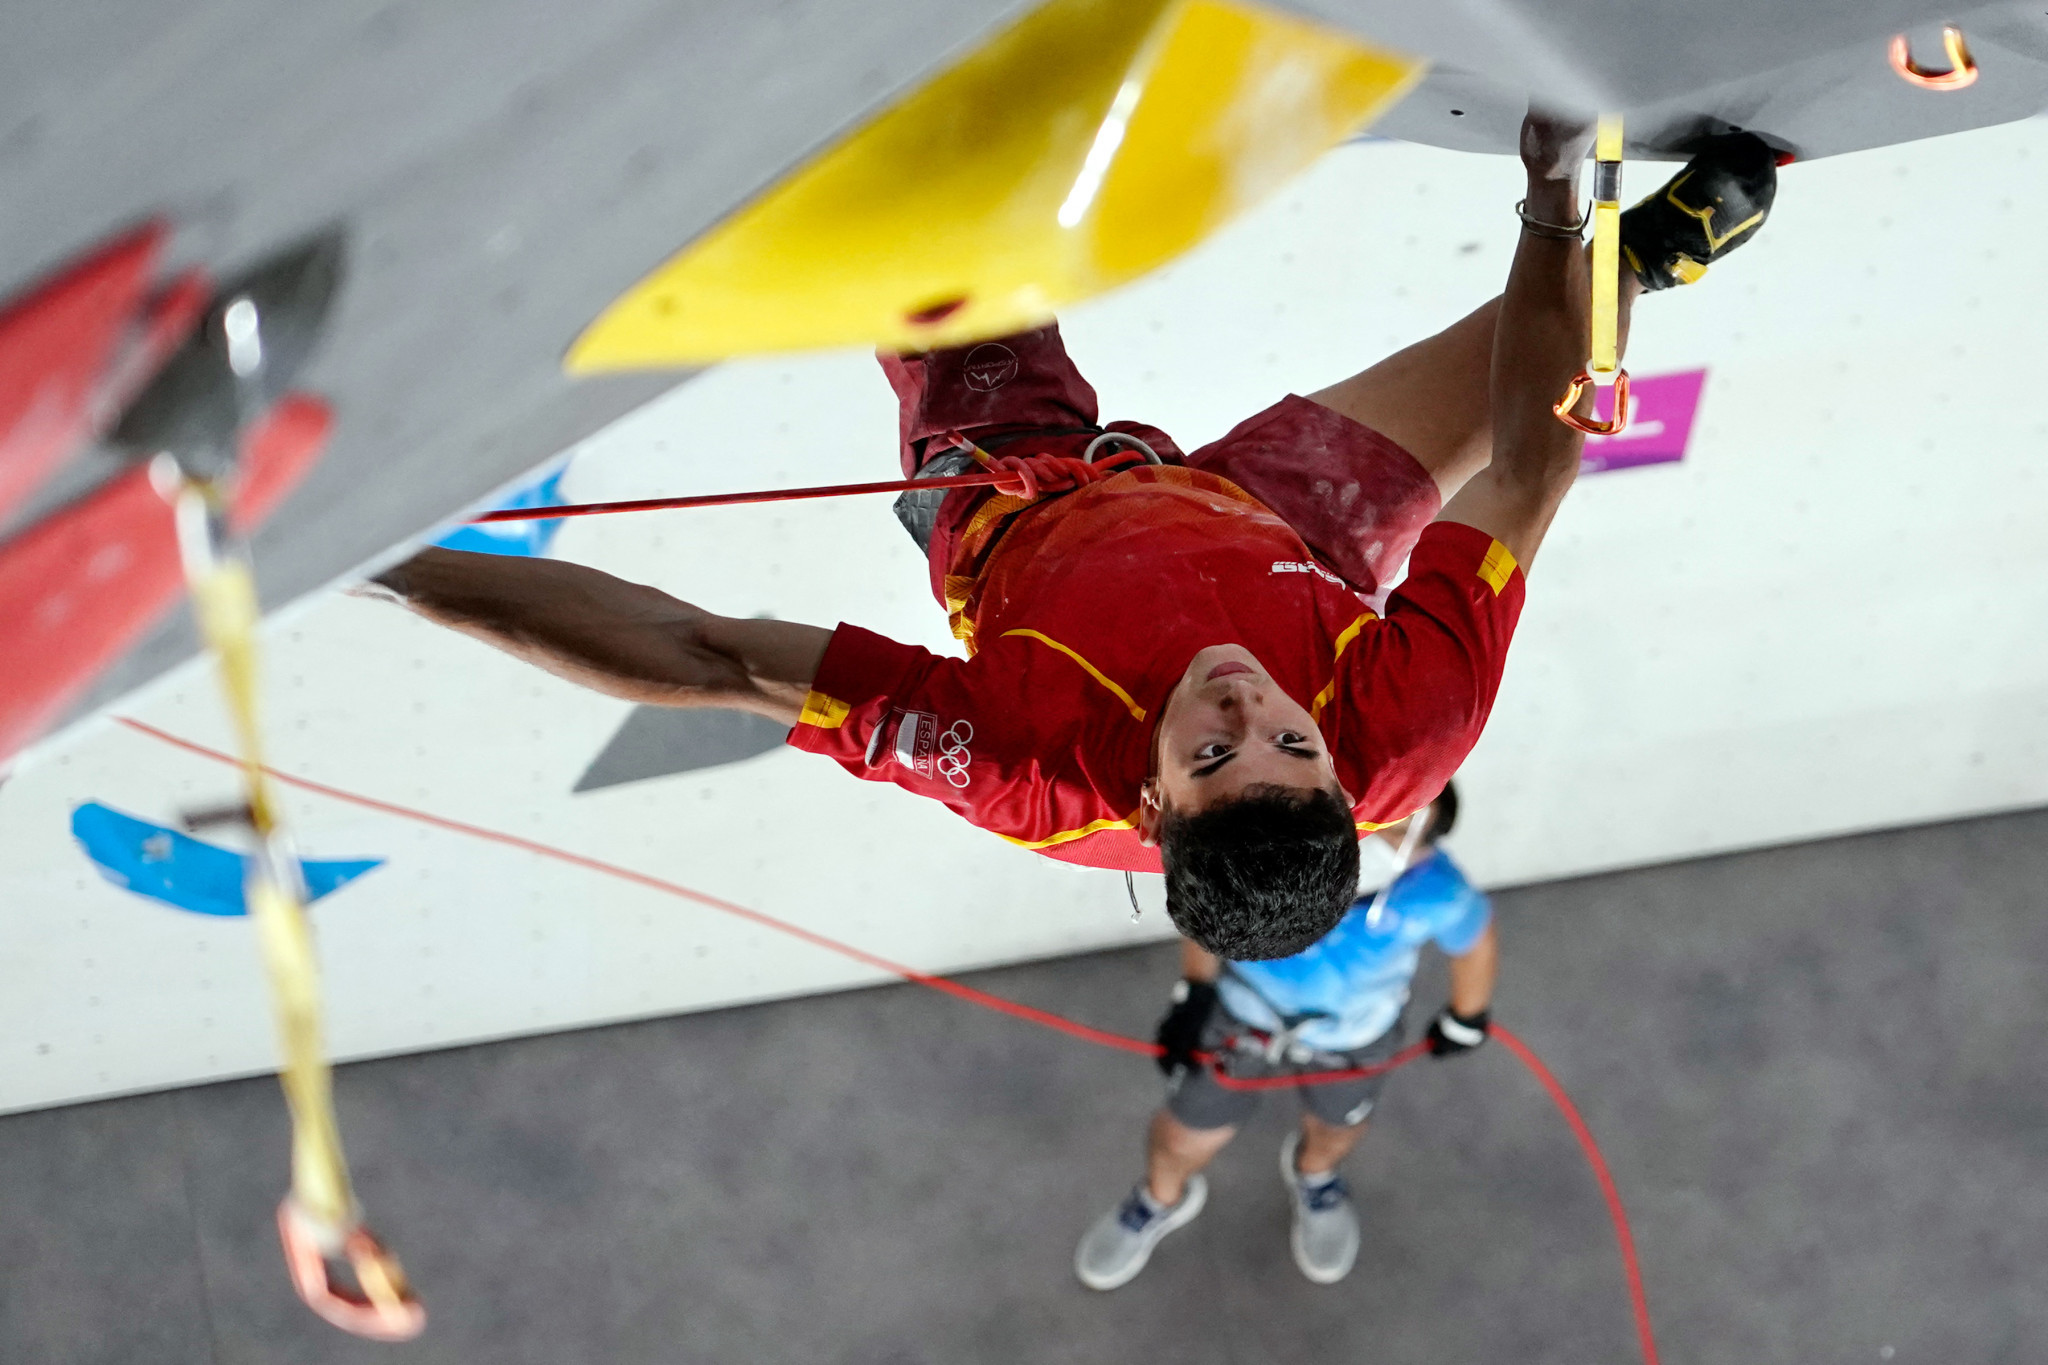 Spanish teenager Alberto Ginés López won the first-ever Olympic sport climbing gold medal, winning the speed portion of the combined final ©Getty Images